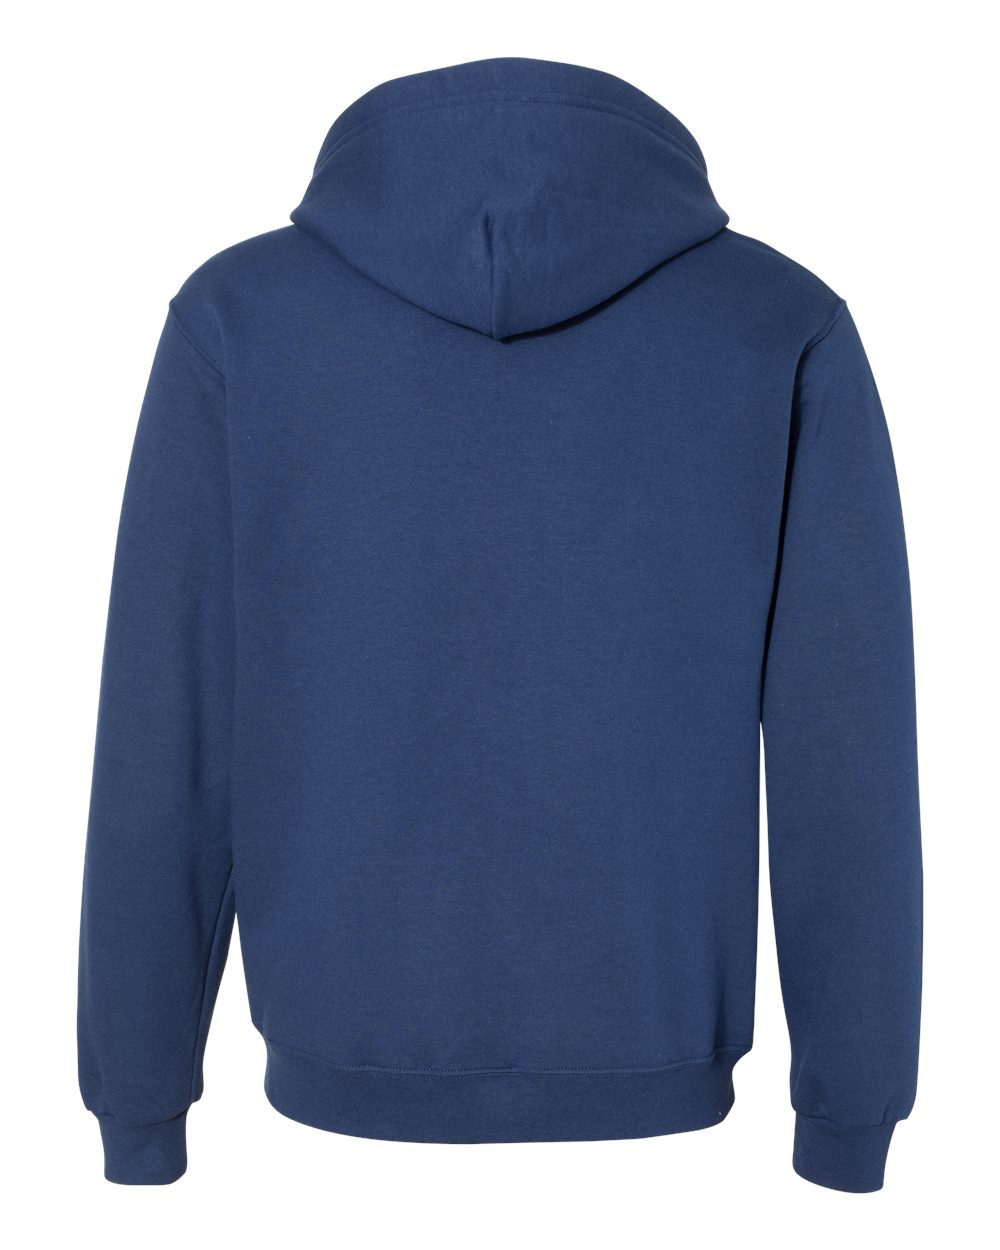 Fruit-of-the-Loom-Mens-Sofspun-Hooded-Full-Zip-Sweatshirt-Blank-SF73R-up-to-3XL thumbnail 7